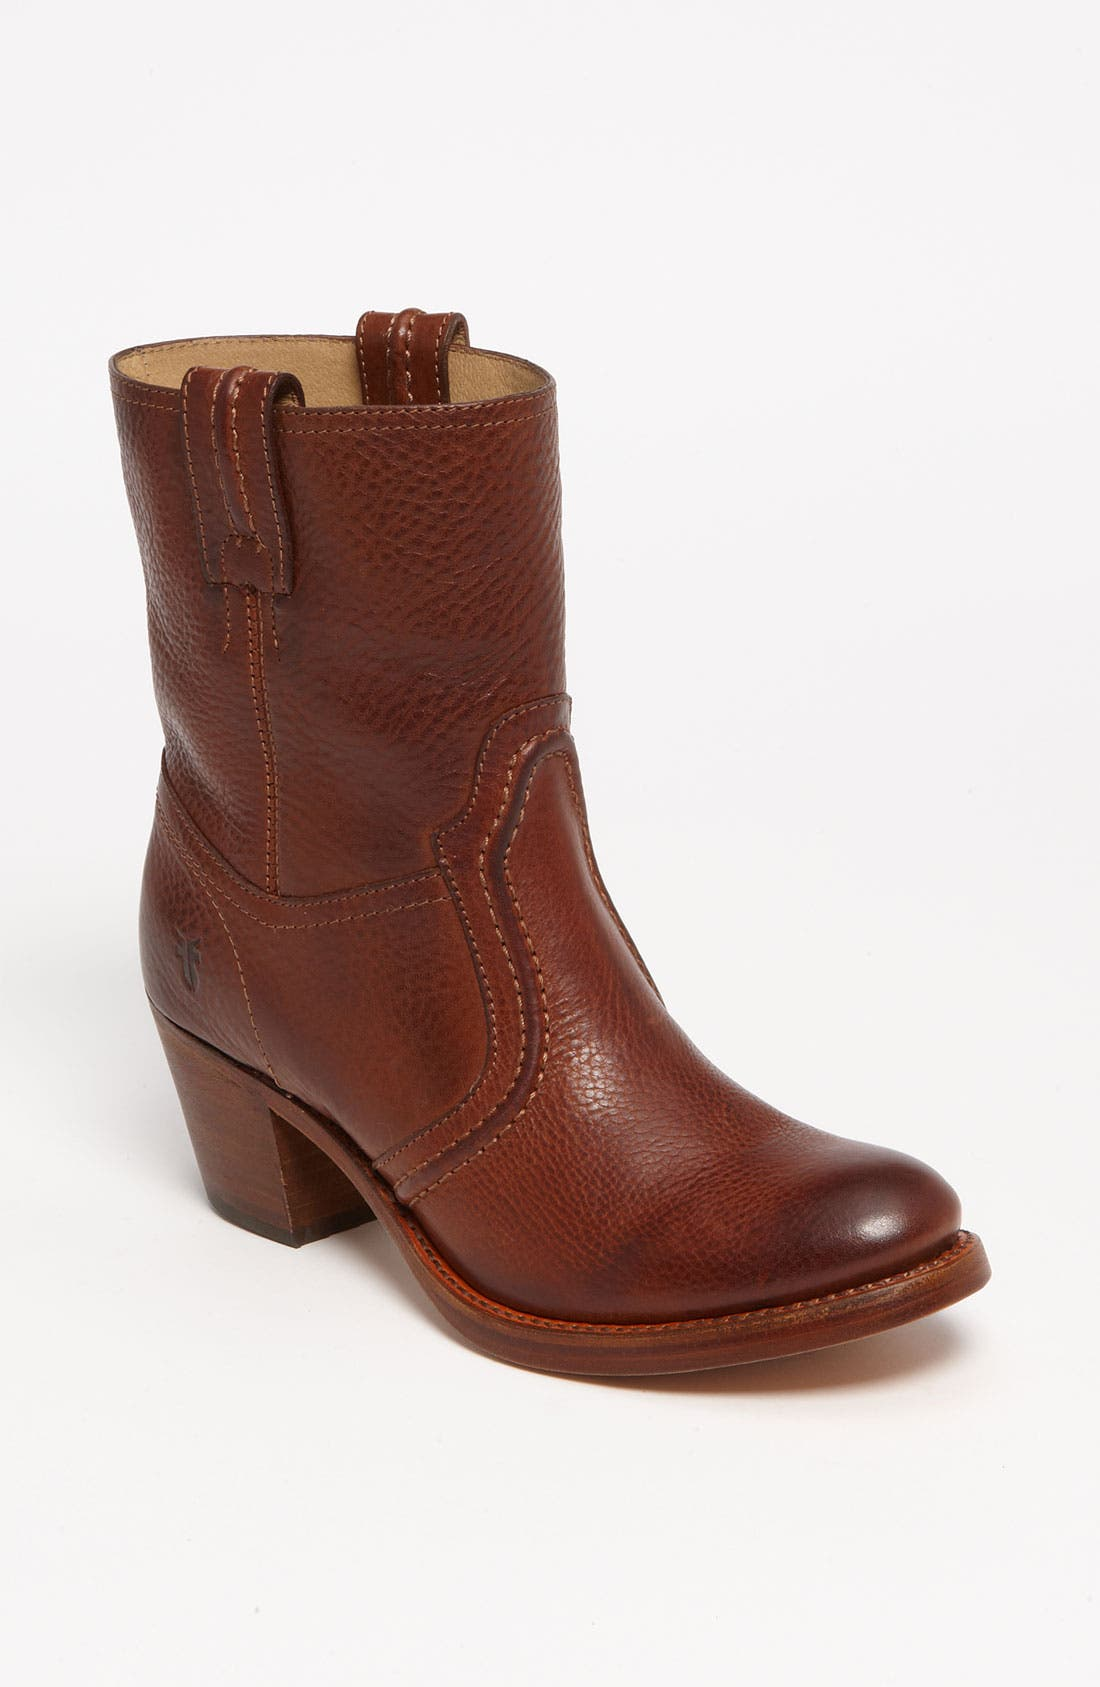 Alternate Image 1 Selected - Frye 'Jane Trapunto' Bootie